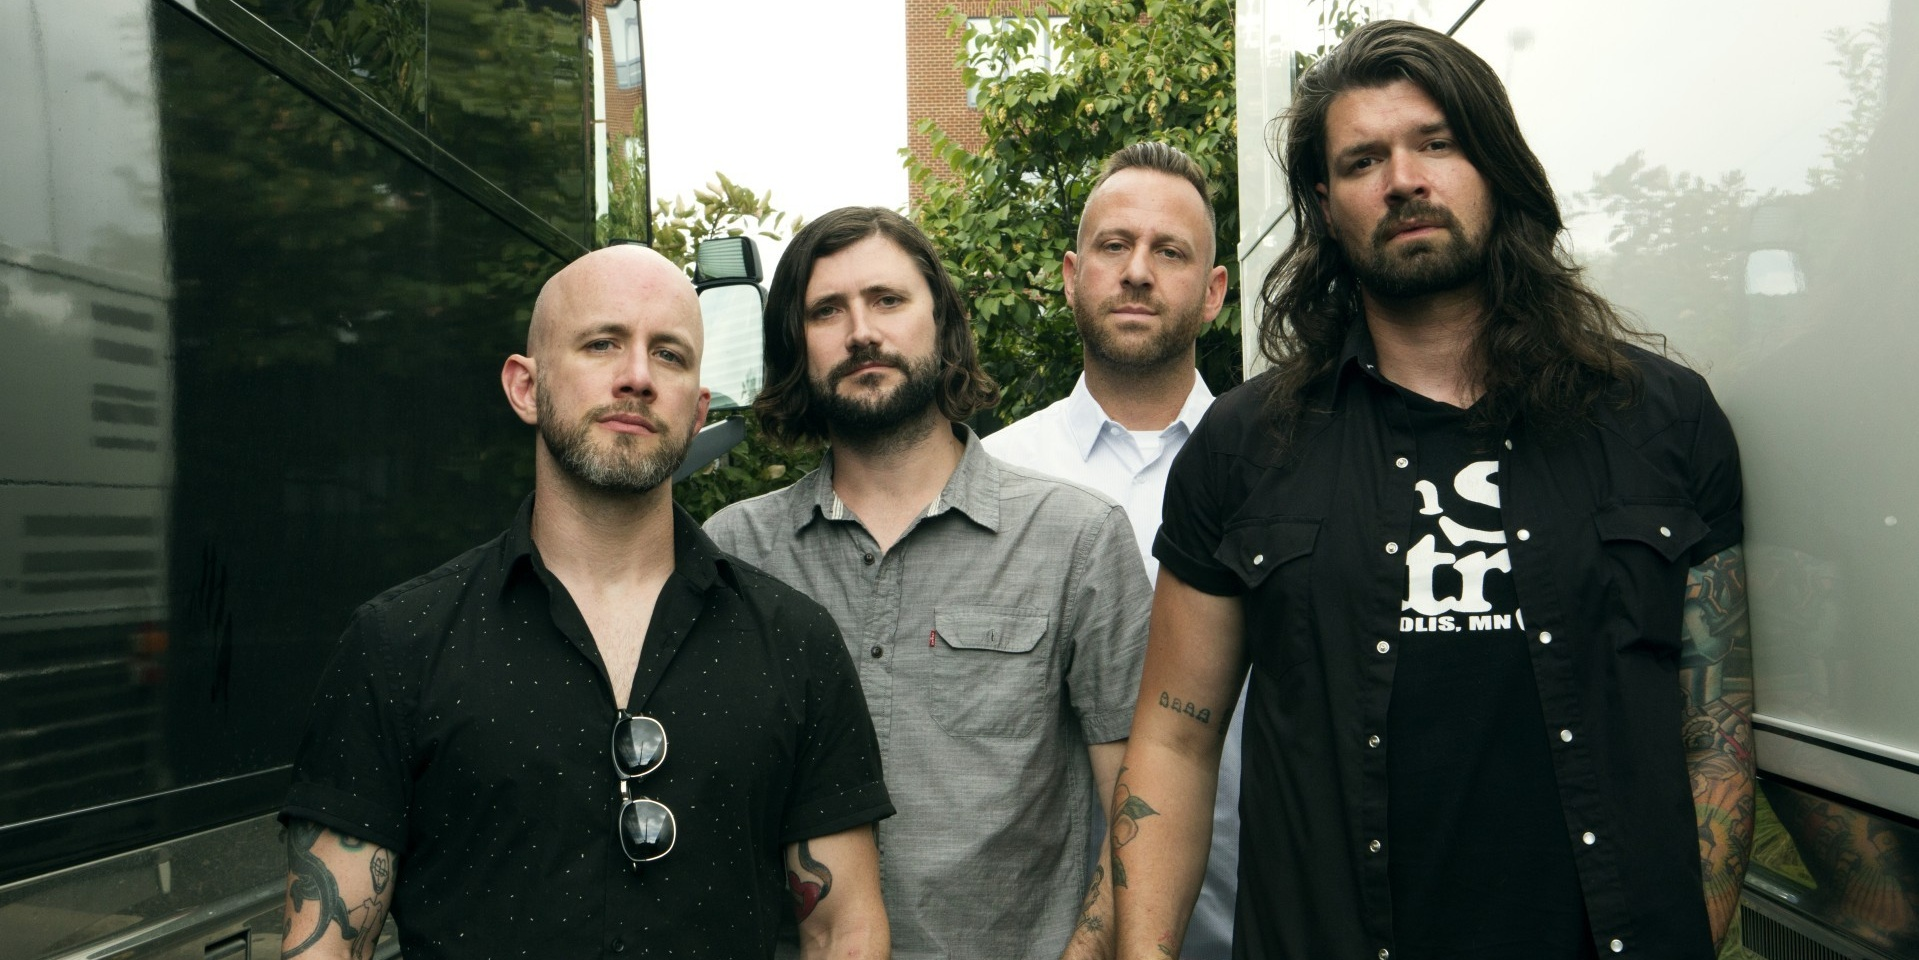 Ticketing and concert details for Taking Back Sunday's 2019 show in Singapore released